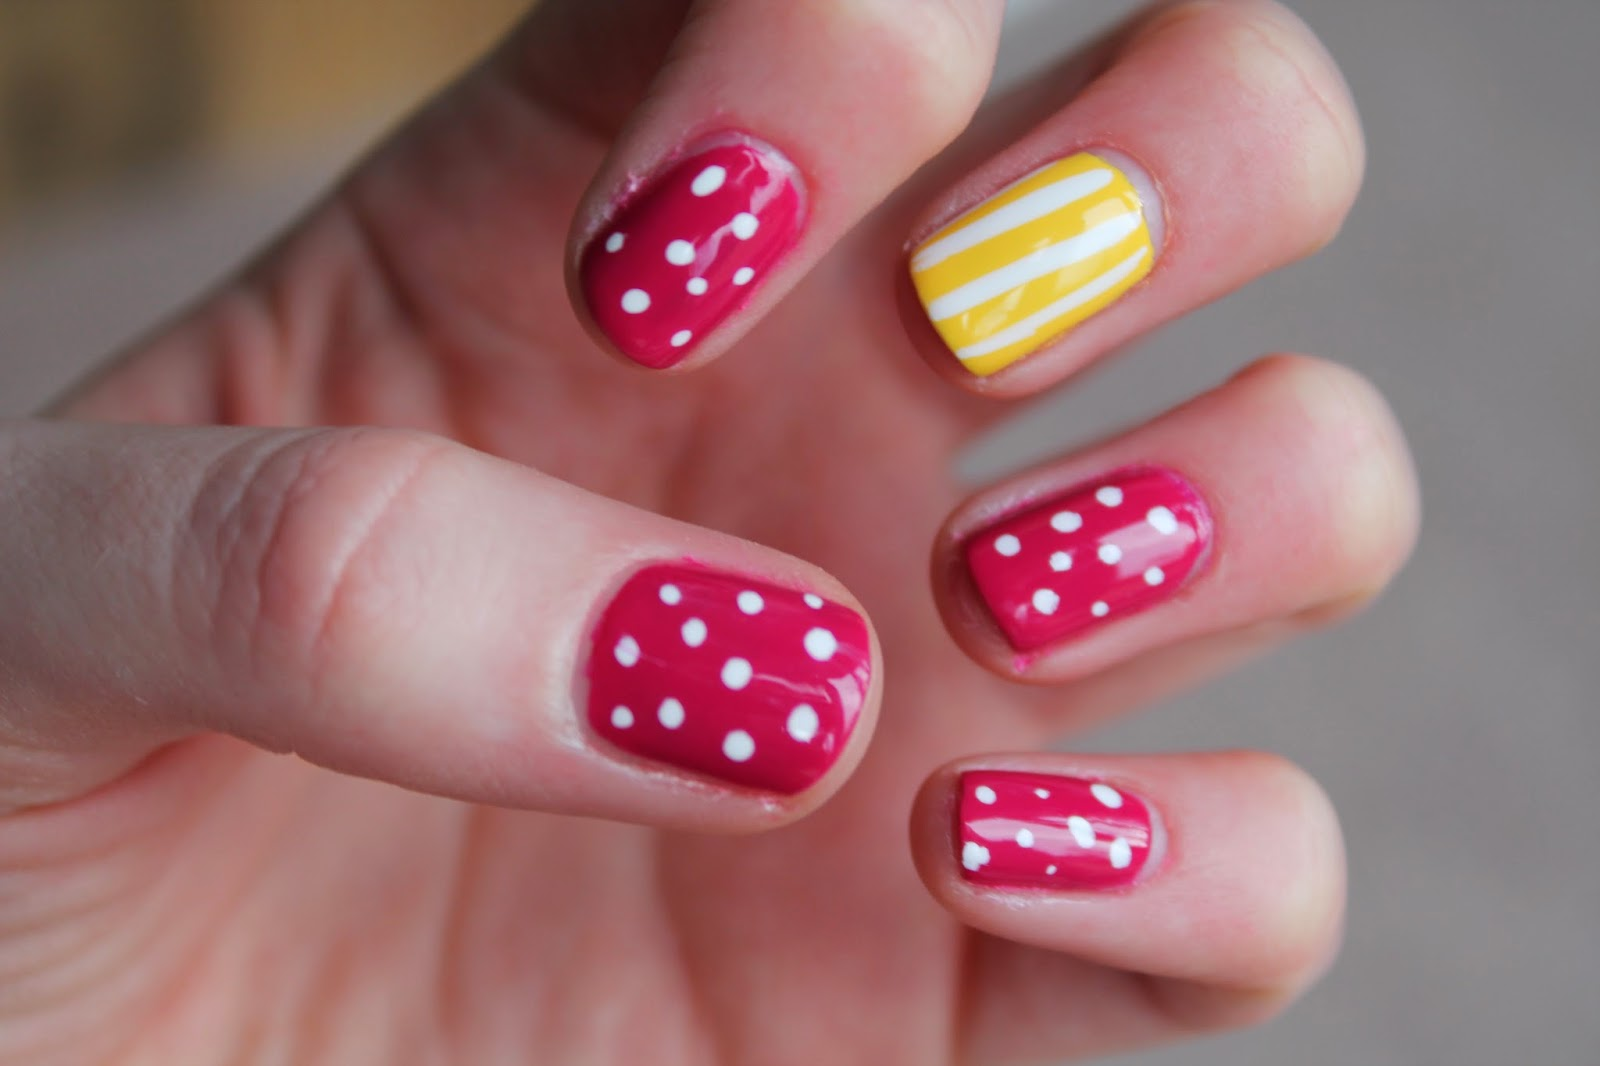 Pink Polka Dot and Yellow Stripy Nail Art